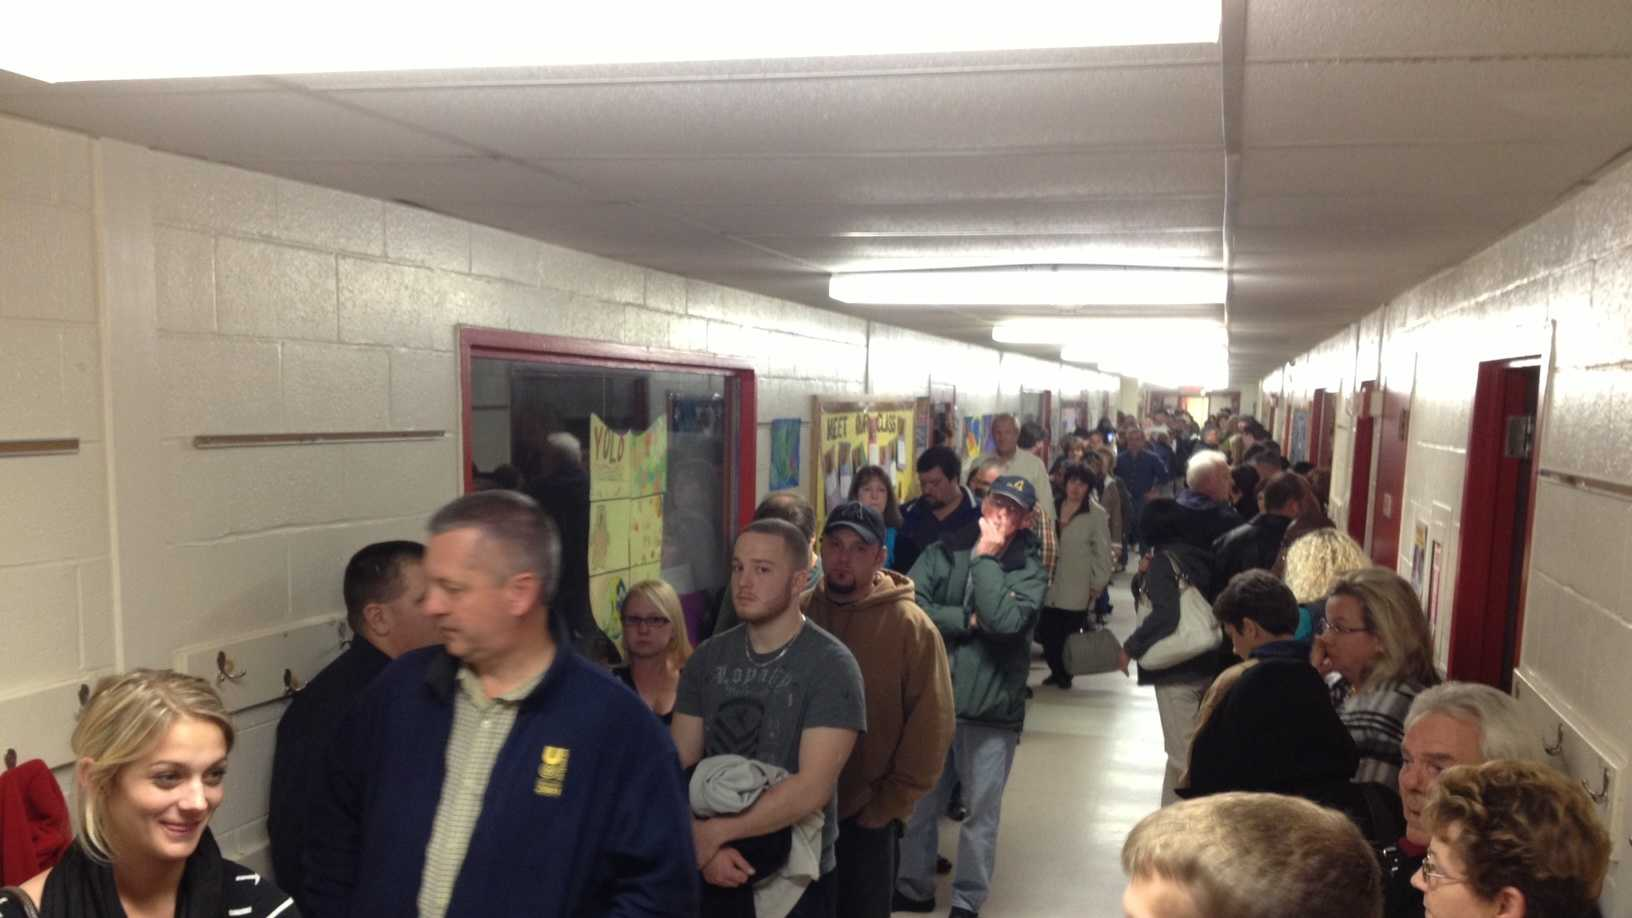 The line to vote in Salem.